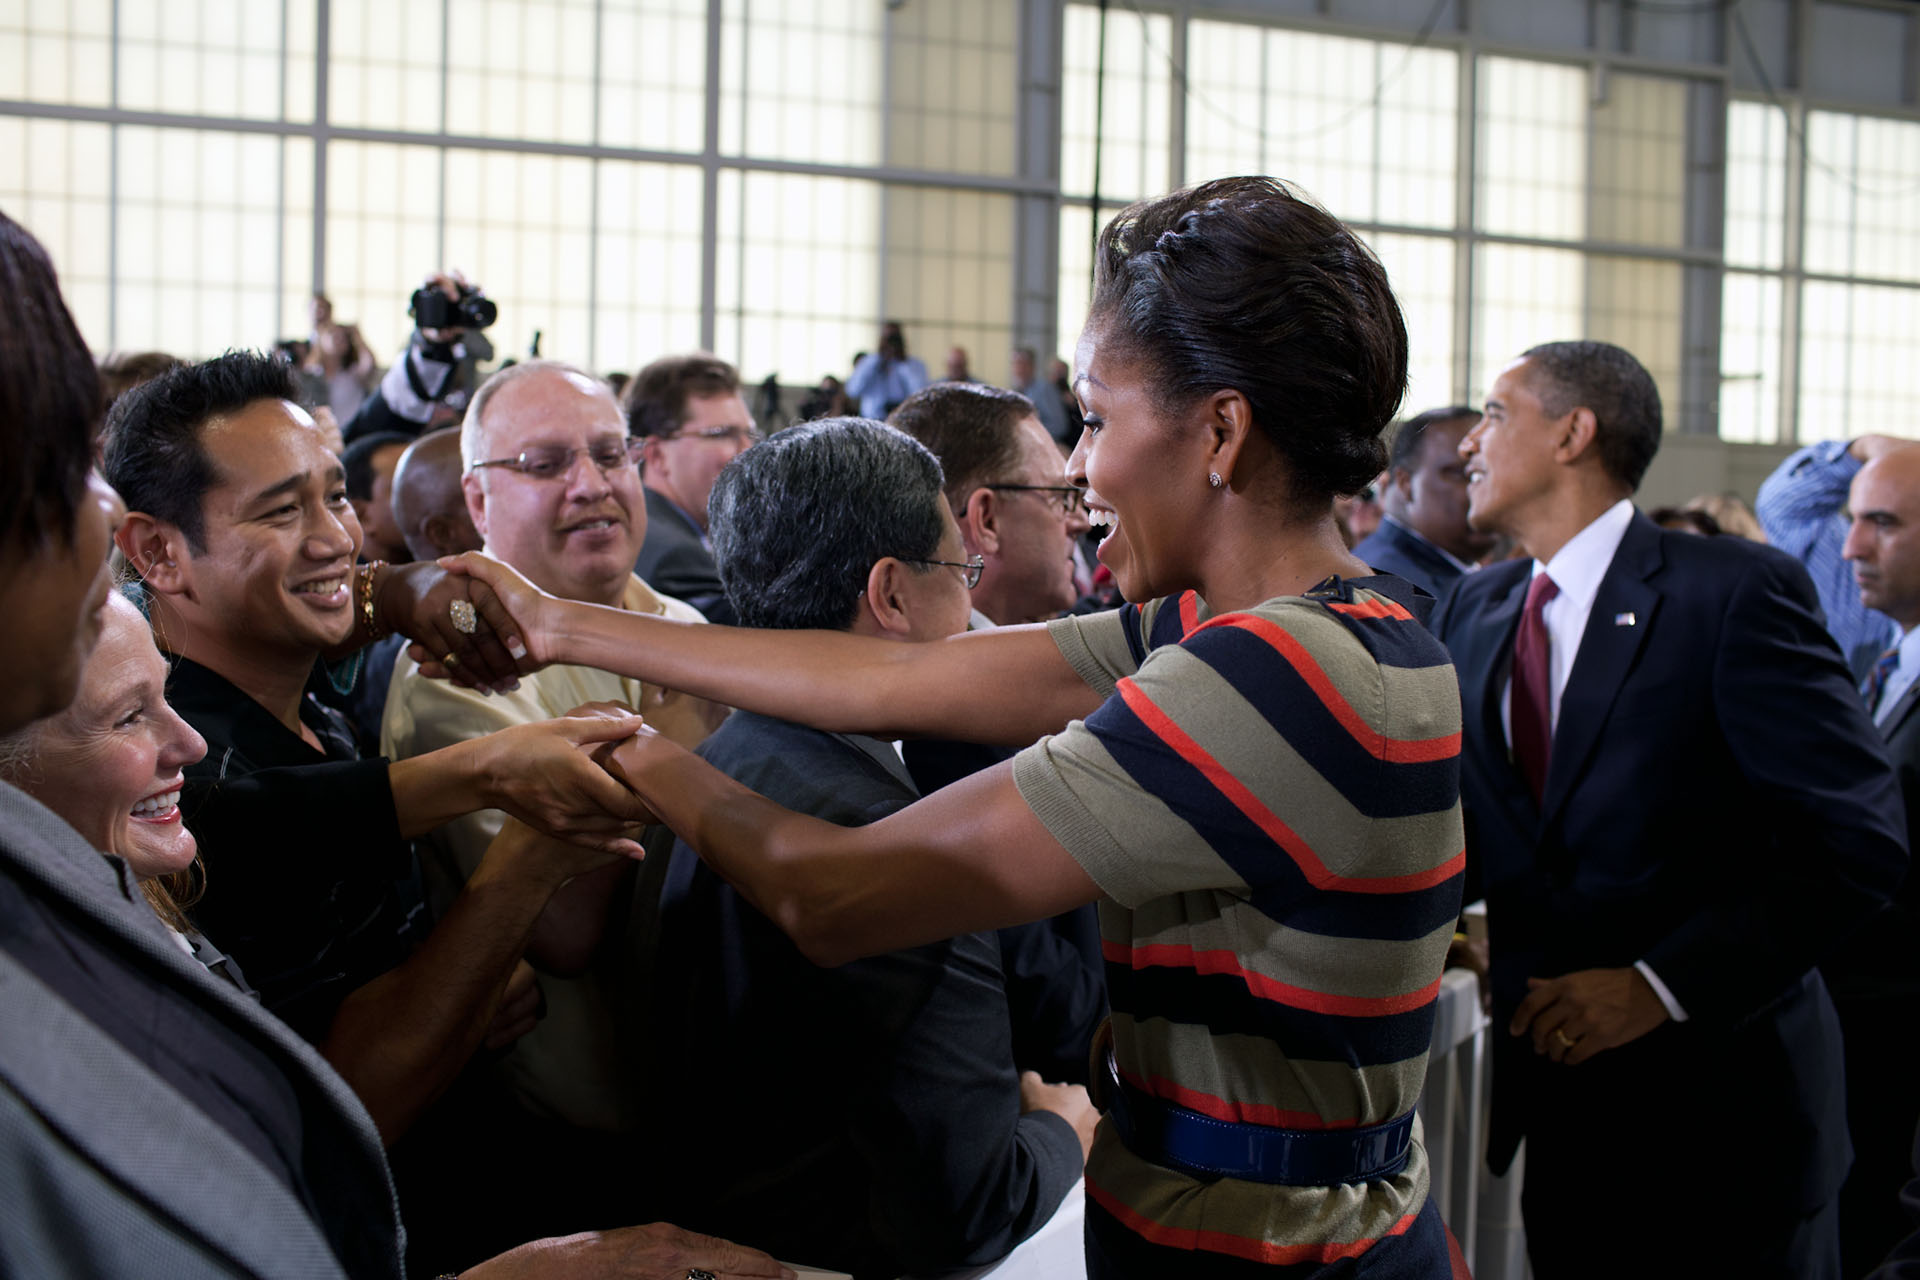 President Obama and First Lady Michelle Obama greet people at Joint Base Langley-Eustis